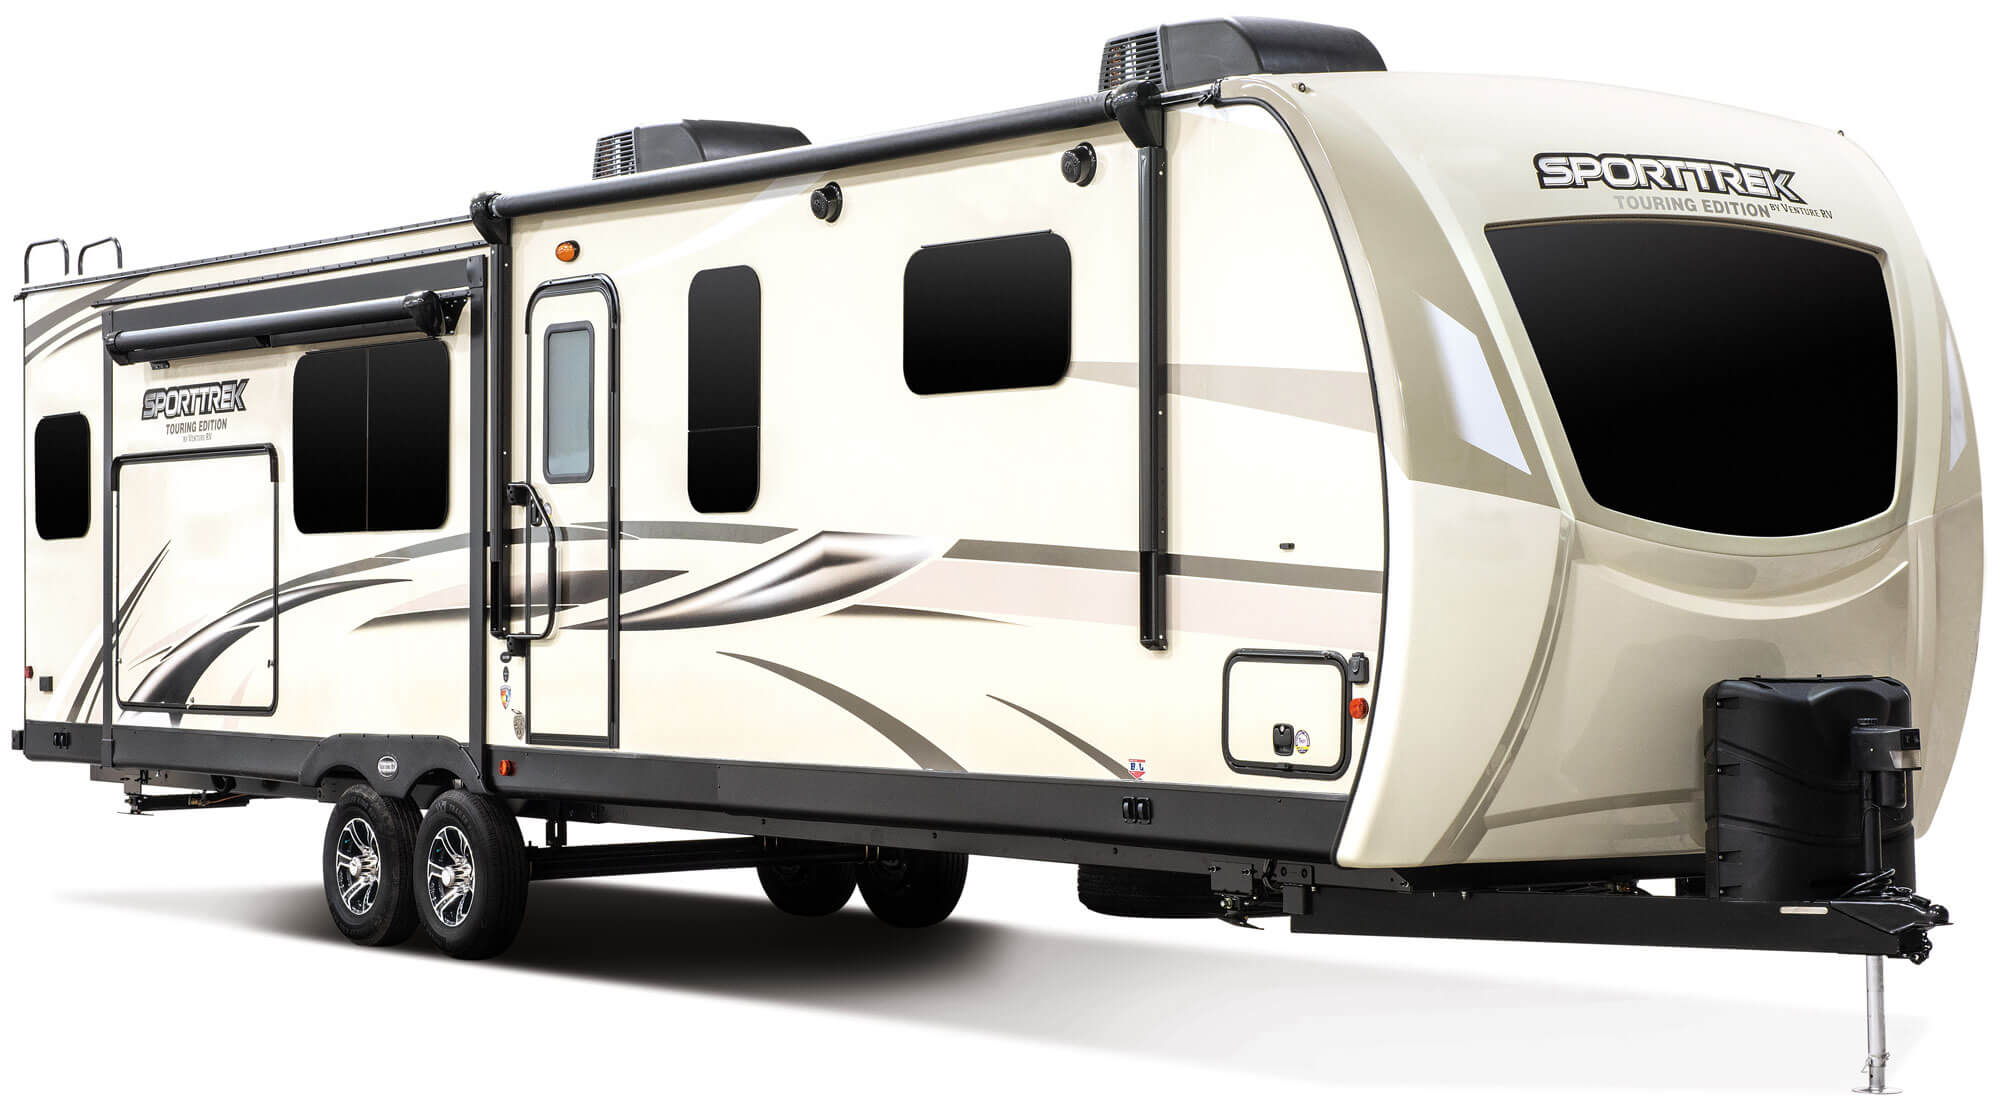 Sporttrek Rv : Lazydays, the rv authority, features a wide selection of rvs in knoxville, tn, including venture rv sporttrek.